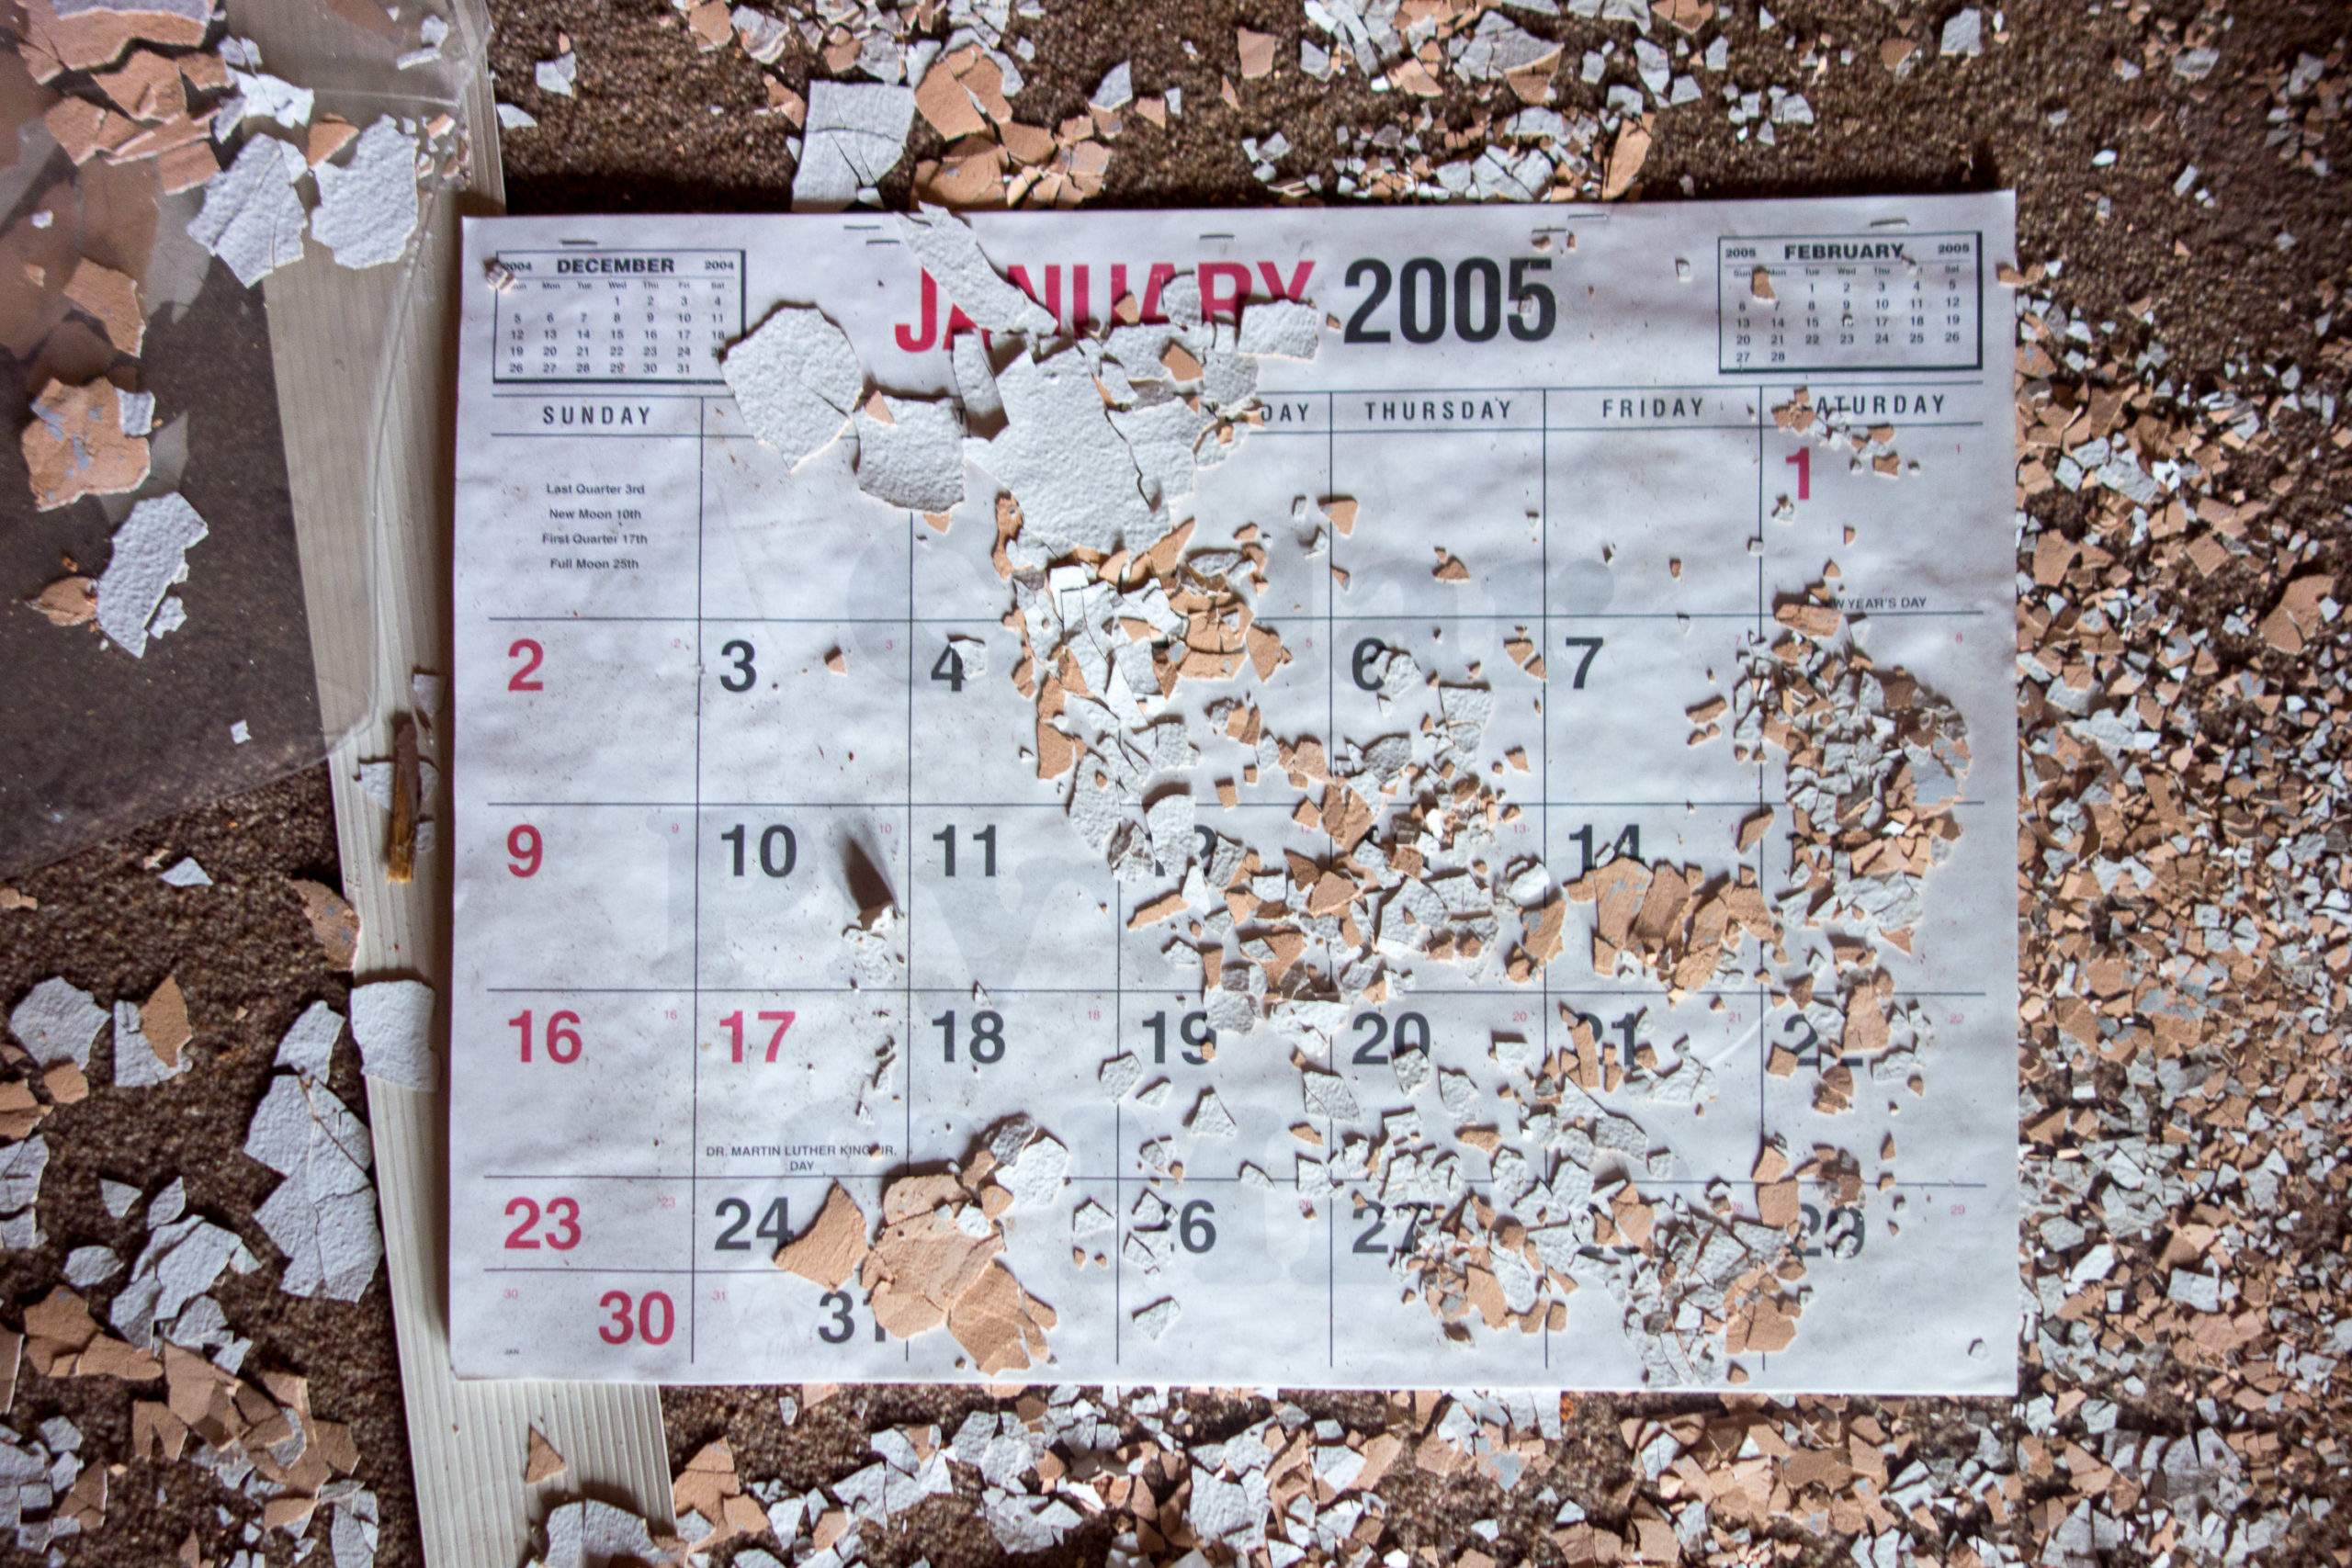 A January 2005 calendar on a floor covered in paint chips